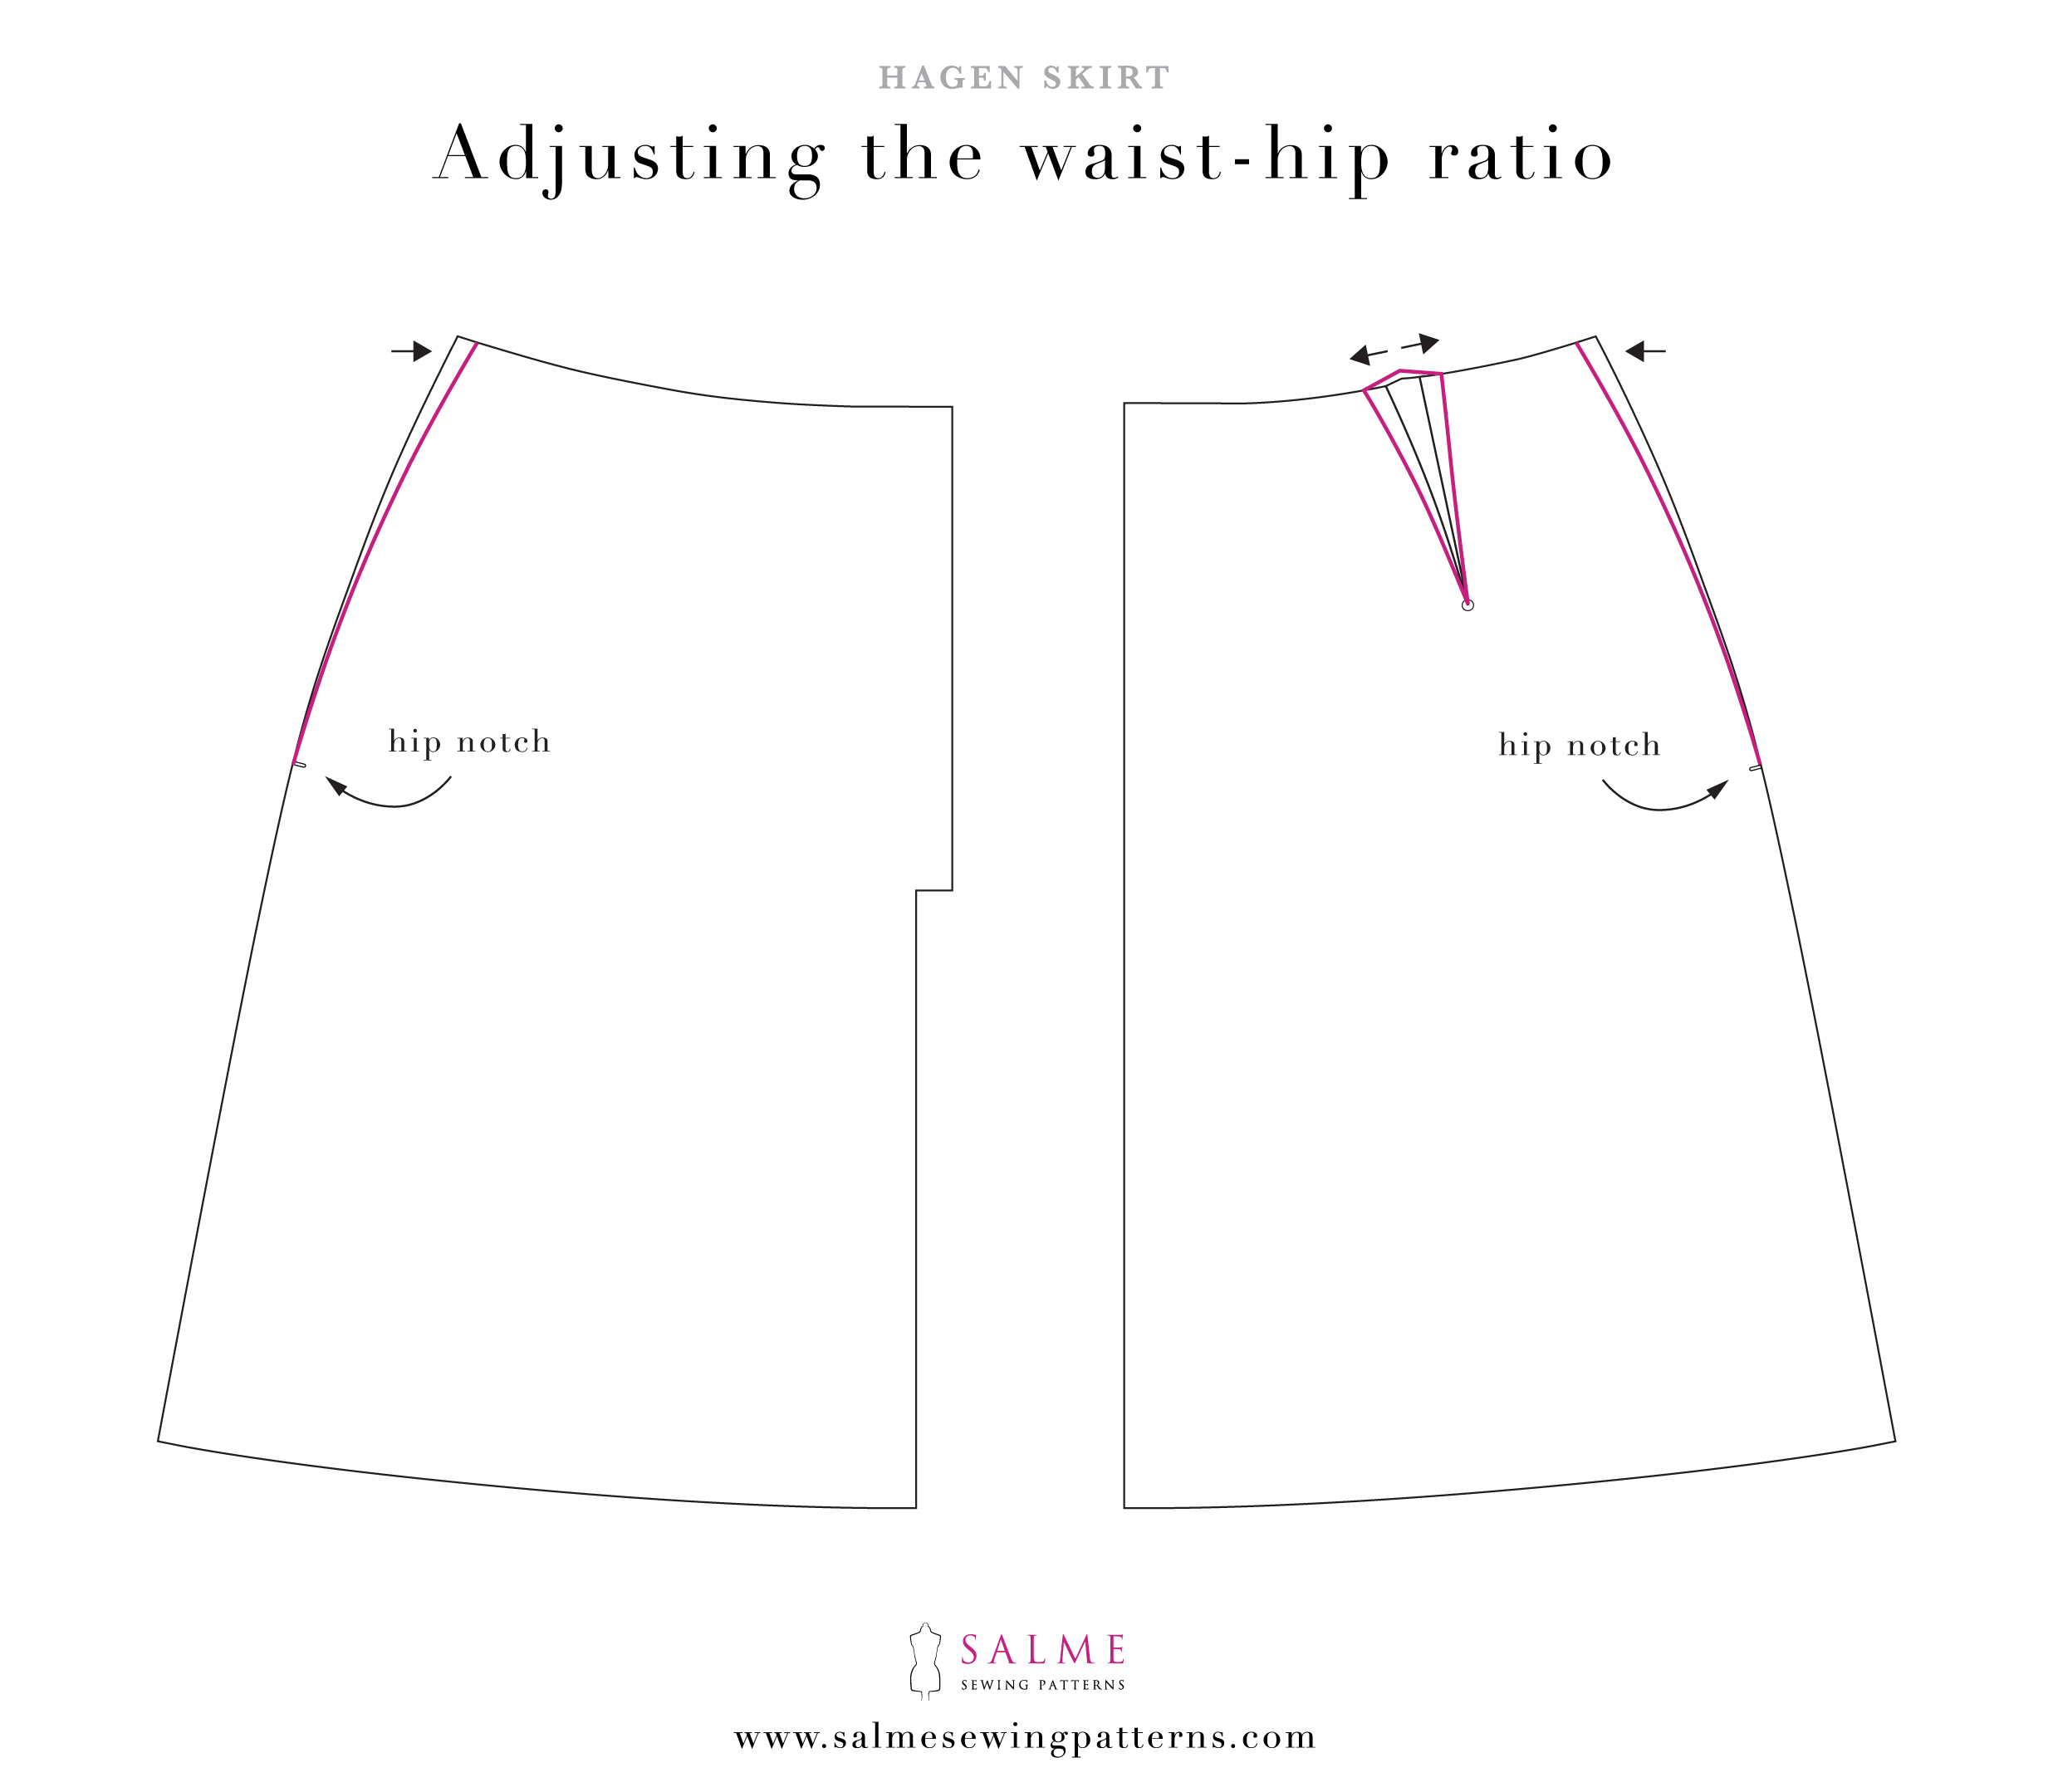 Hagen skirt pattern alteration